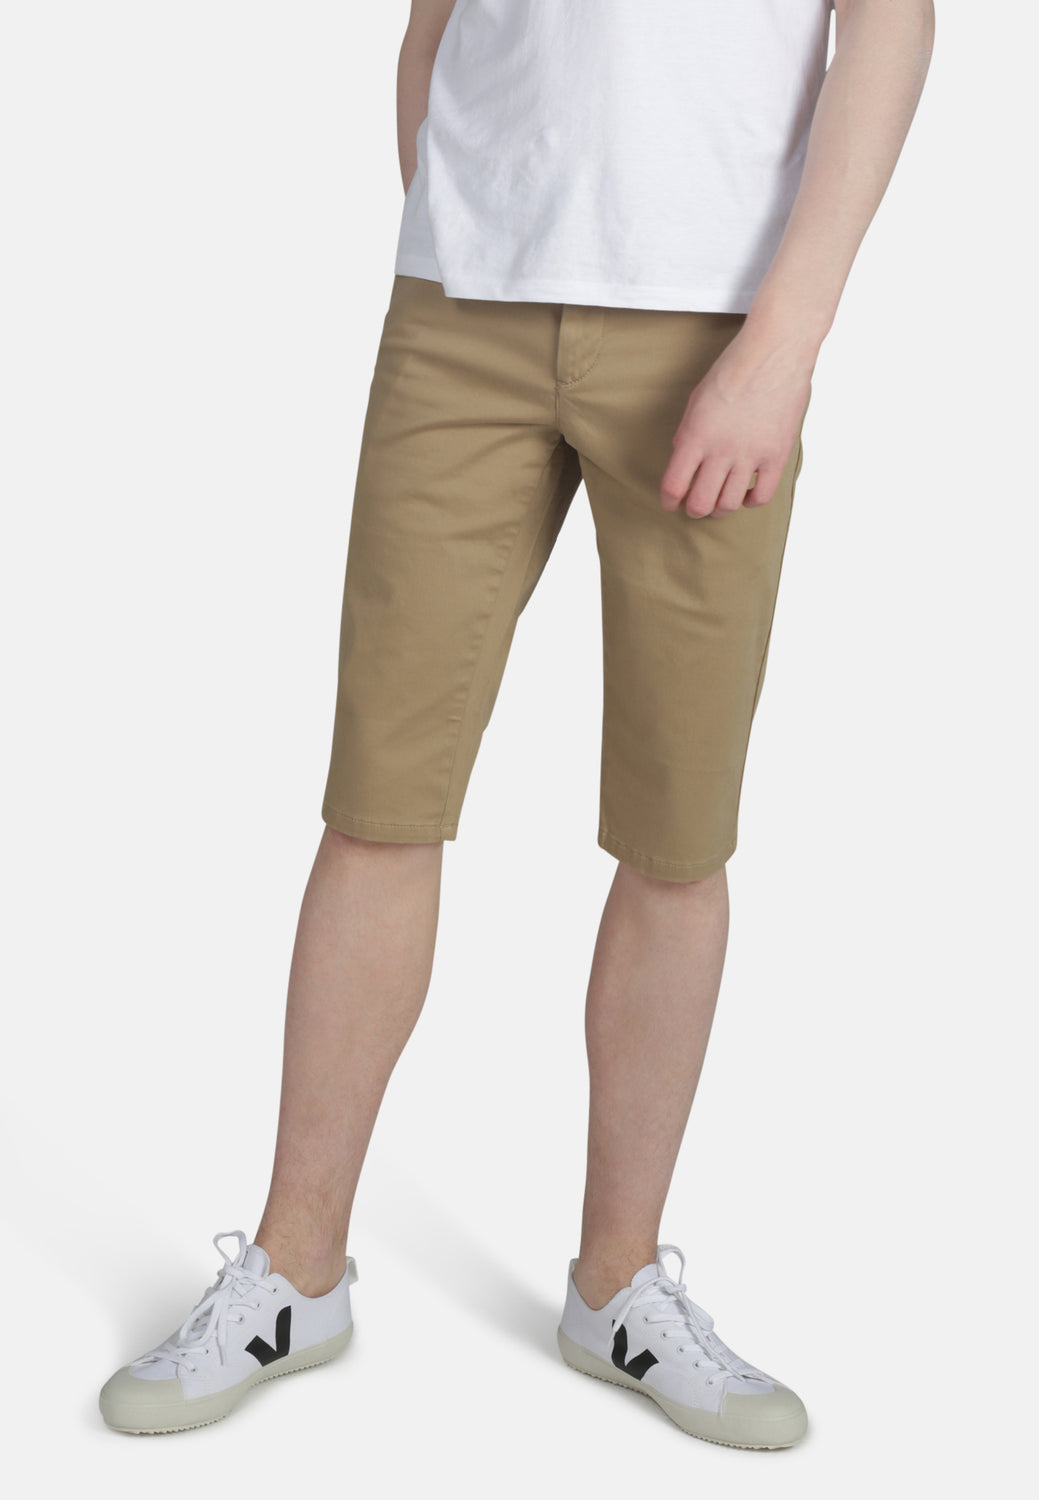 CHINO SHORTS // Organic Sateen Chino Short in Dark Buff - Monkee Genes Organic Jeans Denim - Men's Shorts Monkee Genes Official  Monkee Genes Official